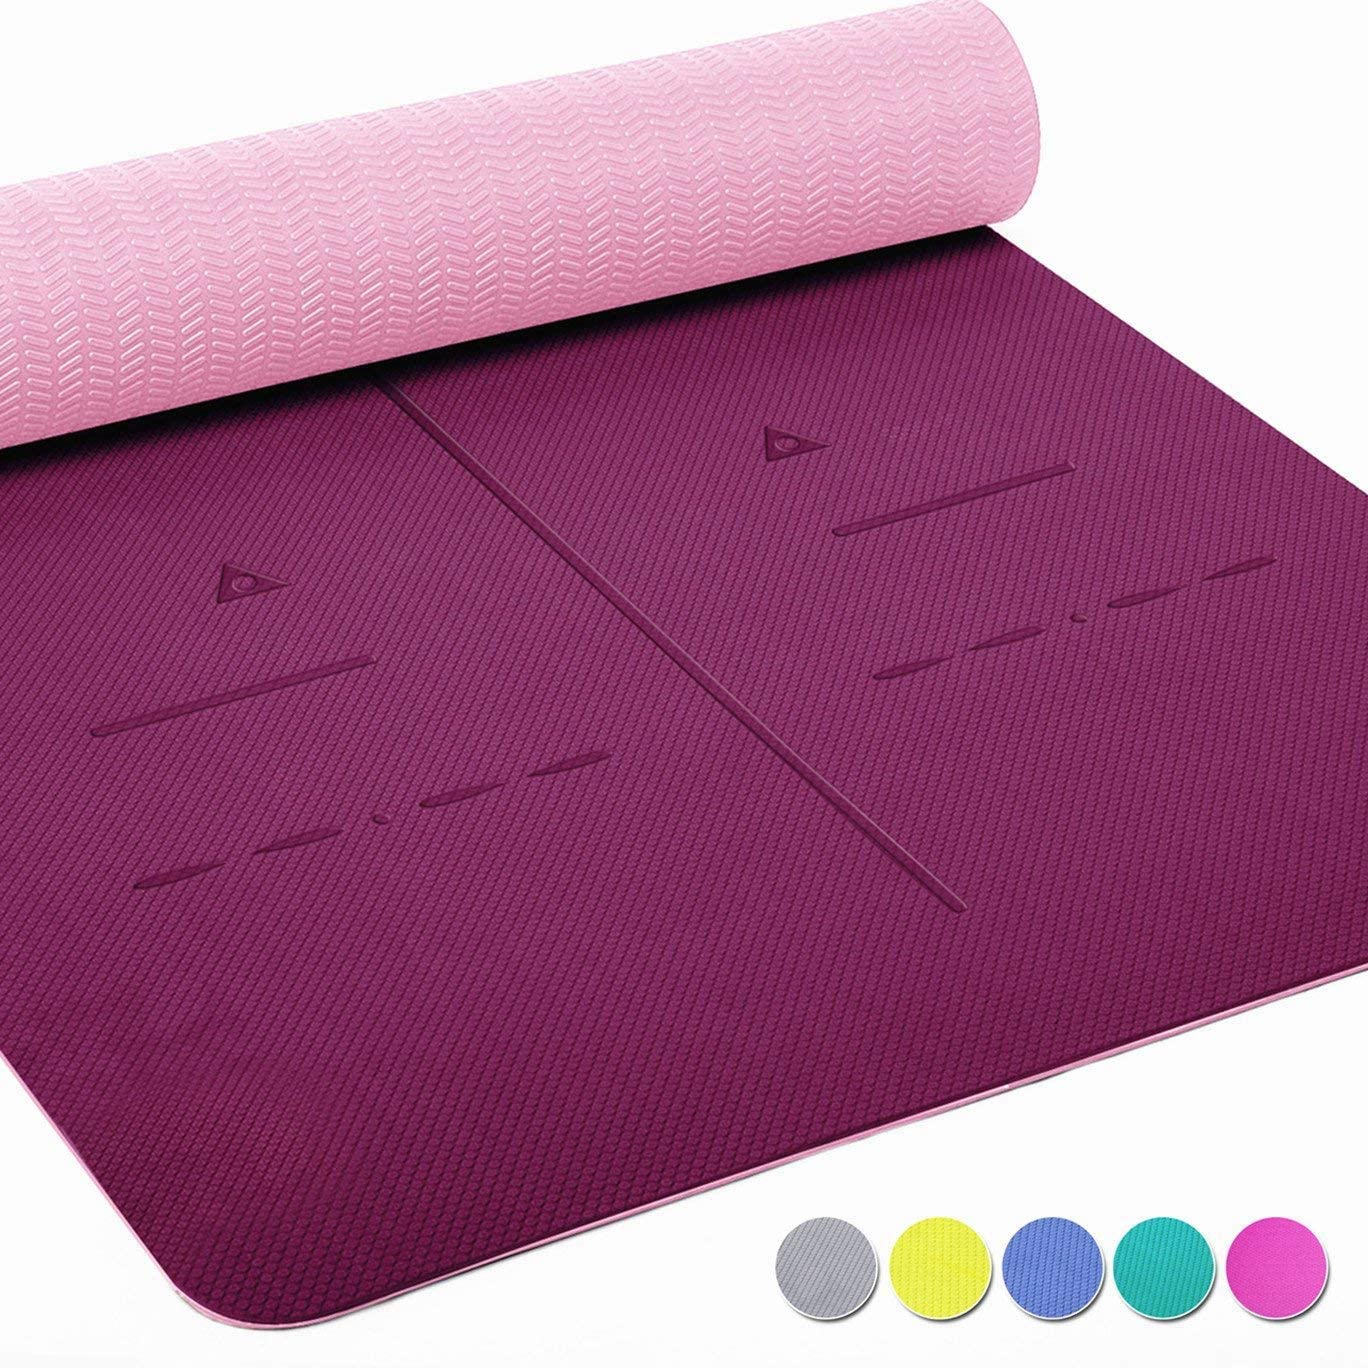 "Non Slip Yoga Mat, Body Alignment System, SGS Certified TPE Material - Textured Non Slip Surface and Optimal Cushioning,72""x 26"" Thickness 1/4"""